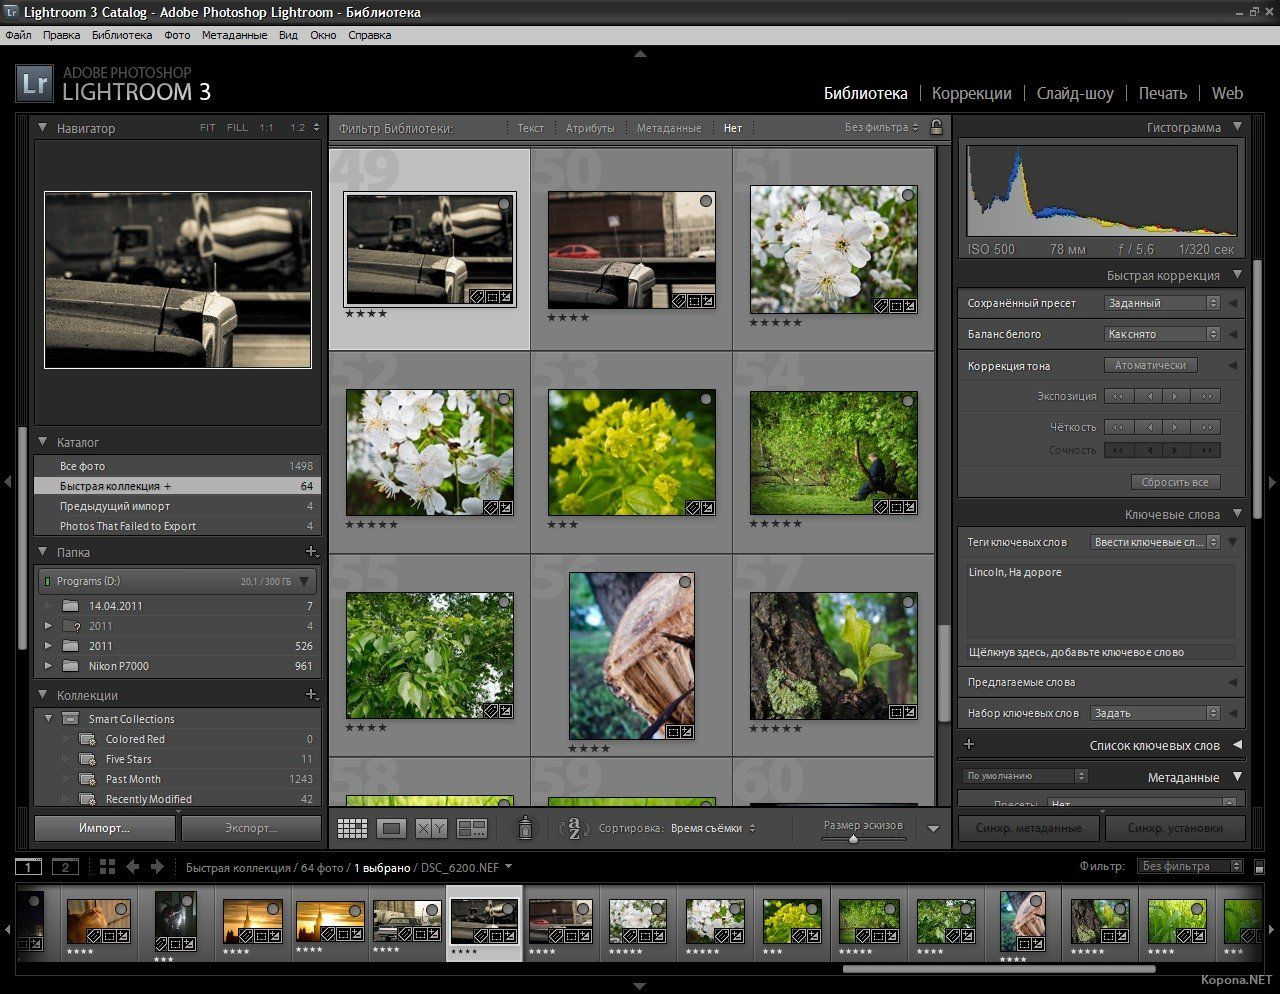 lightroom 6 keygen generator